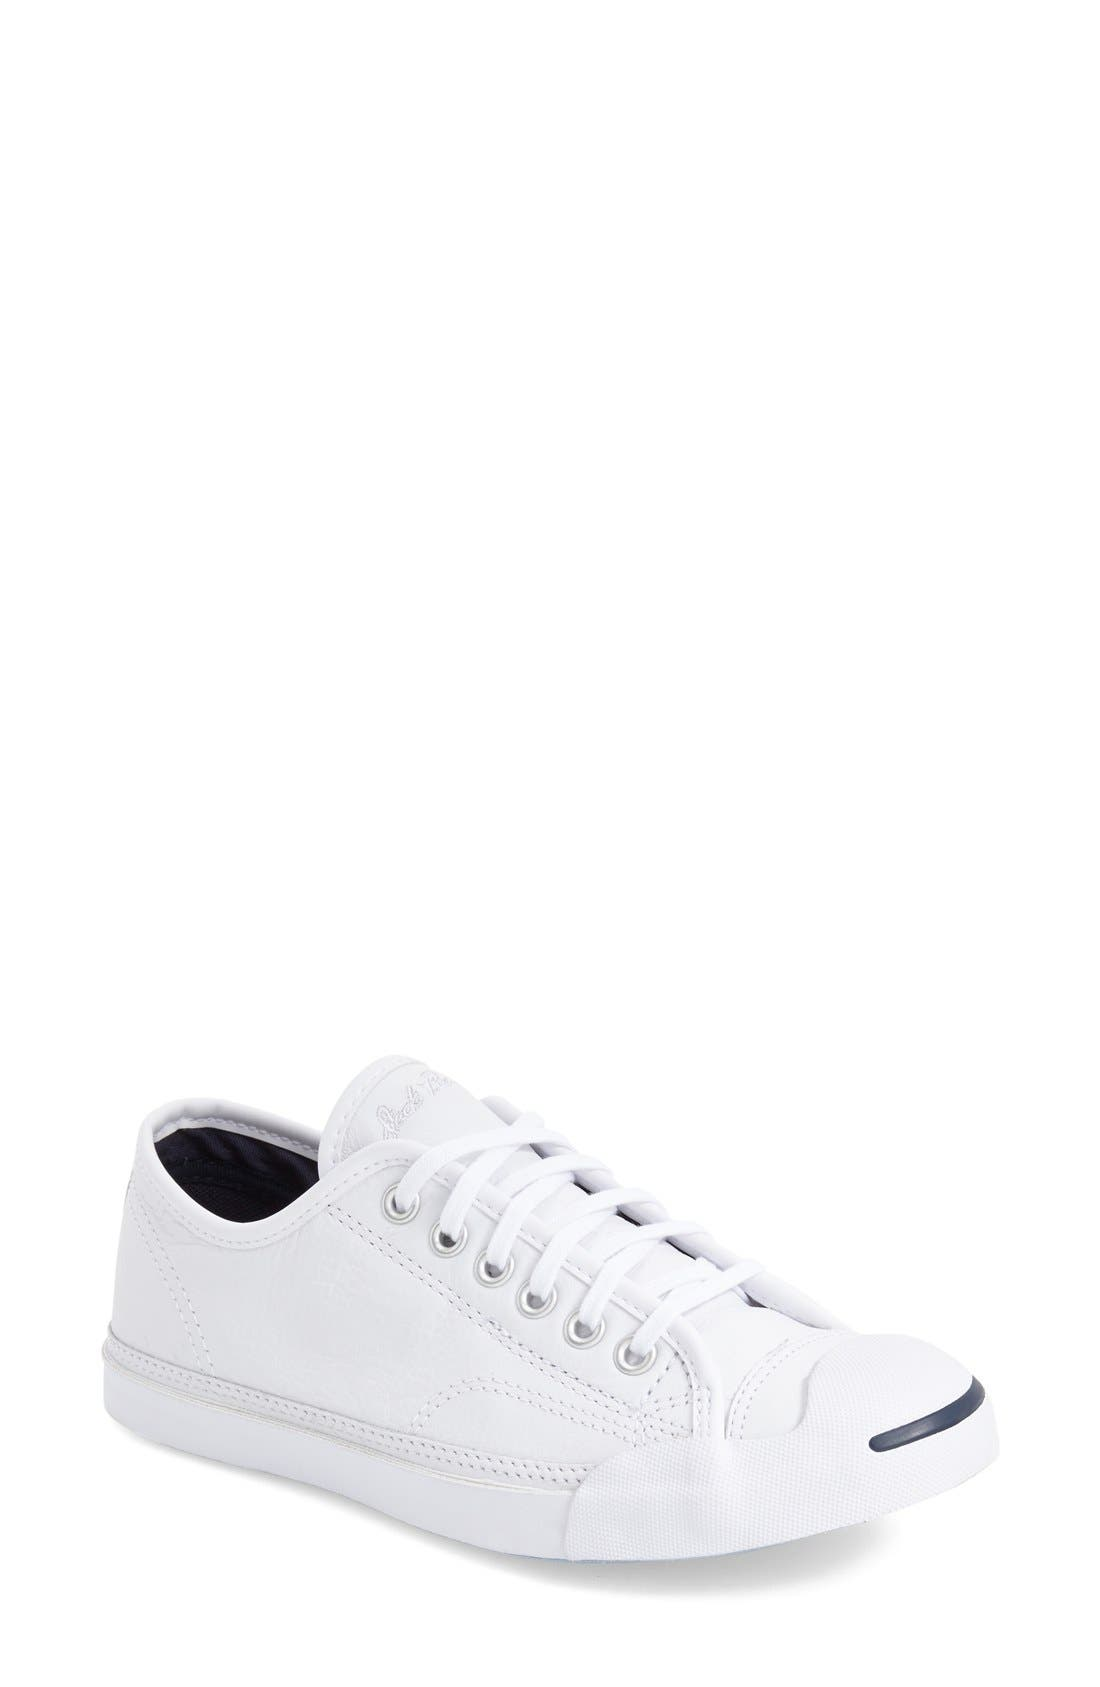 Converse 'Jack Purcell' Low Top Sneaker